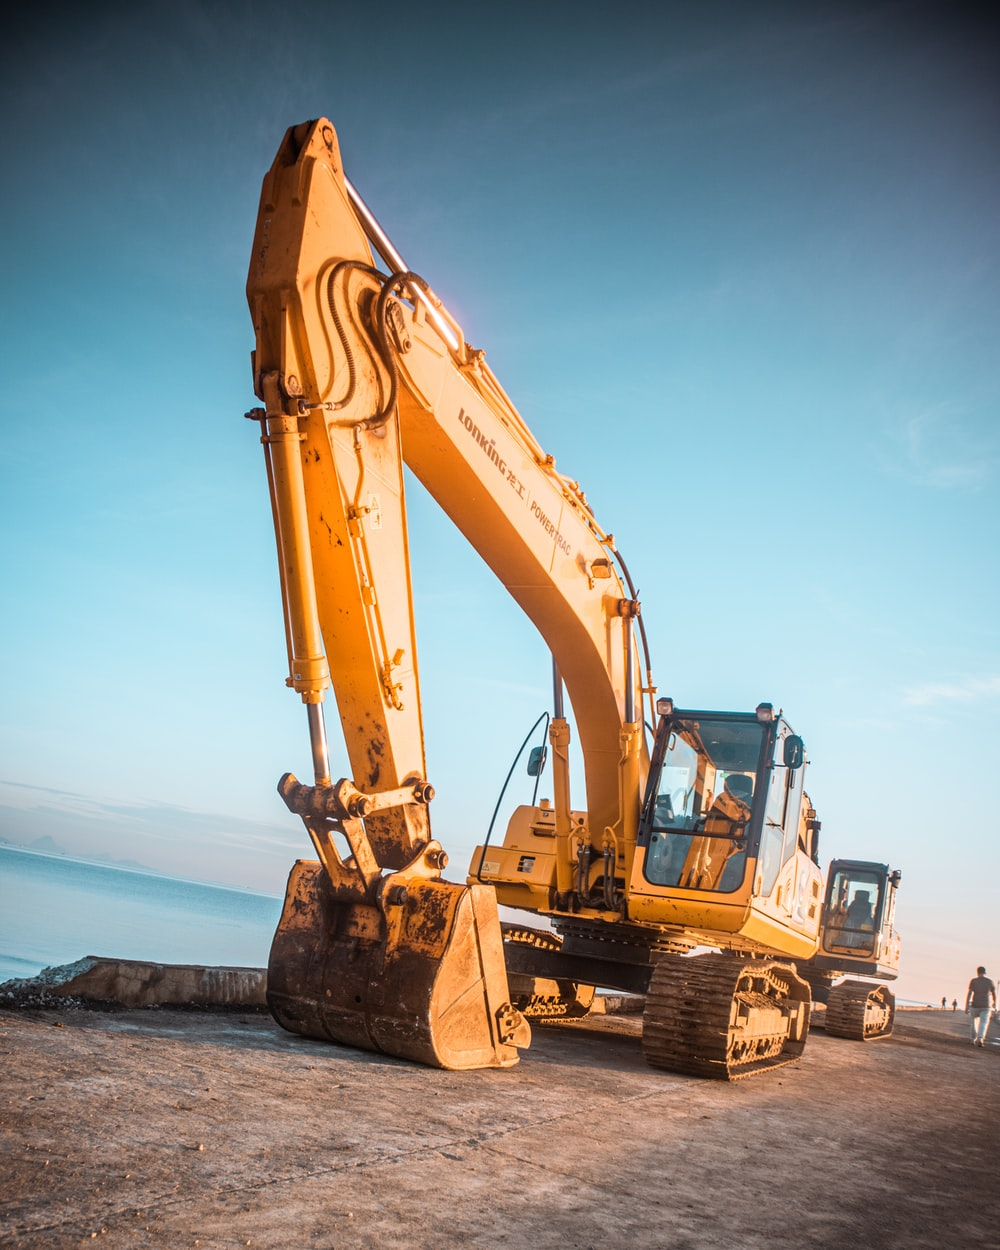 yellow excavator on gray rock near body of water during daytime